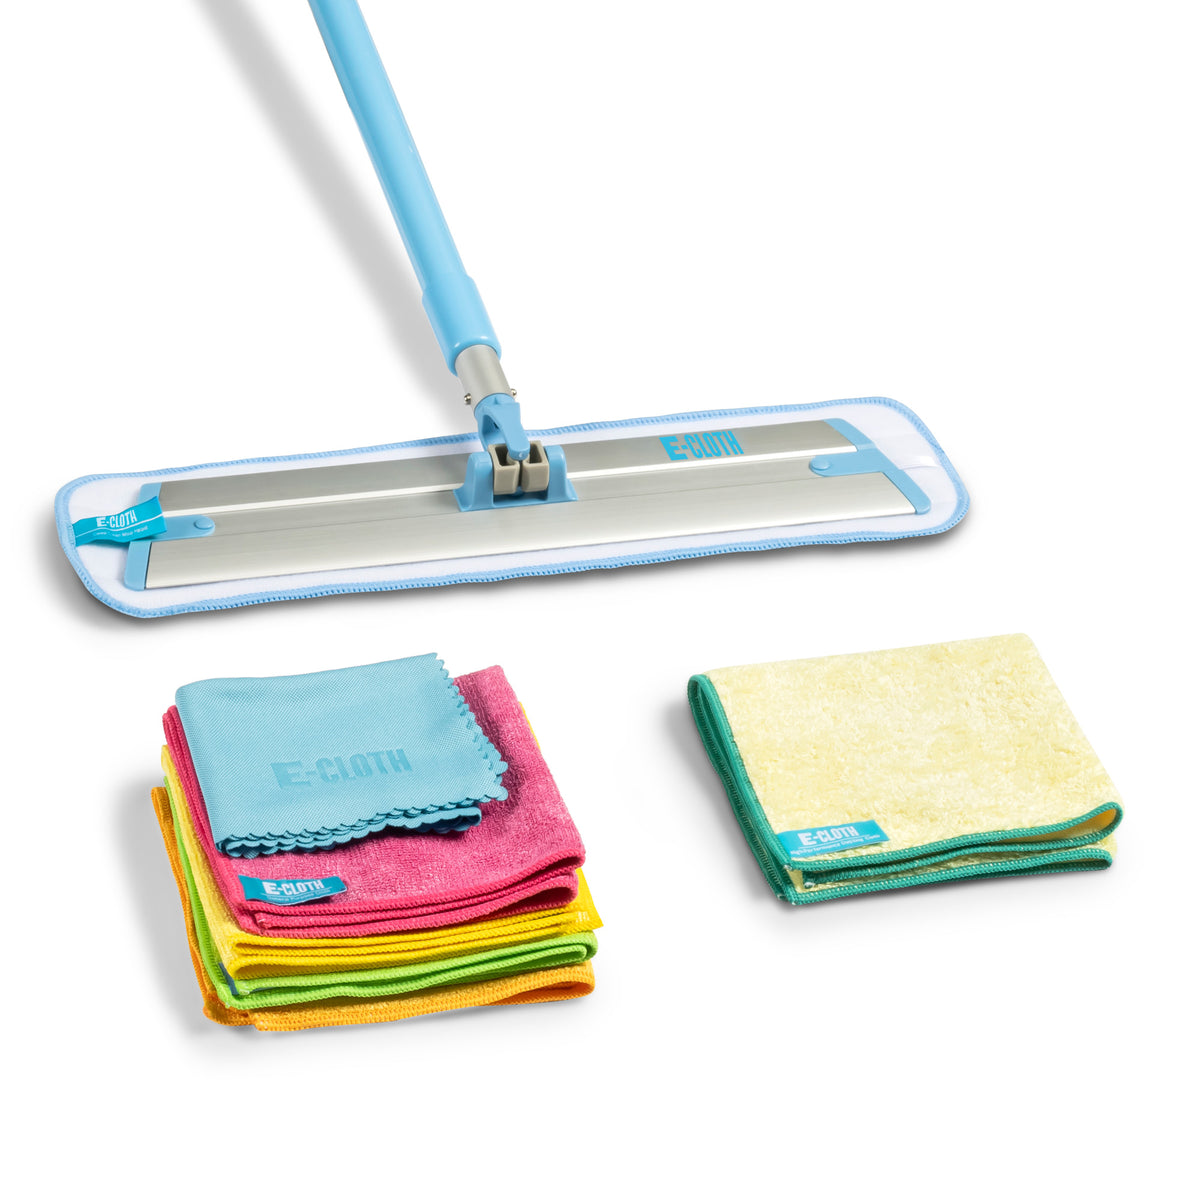 The Baby-Safe Cleaning Bundle